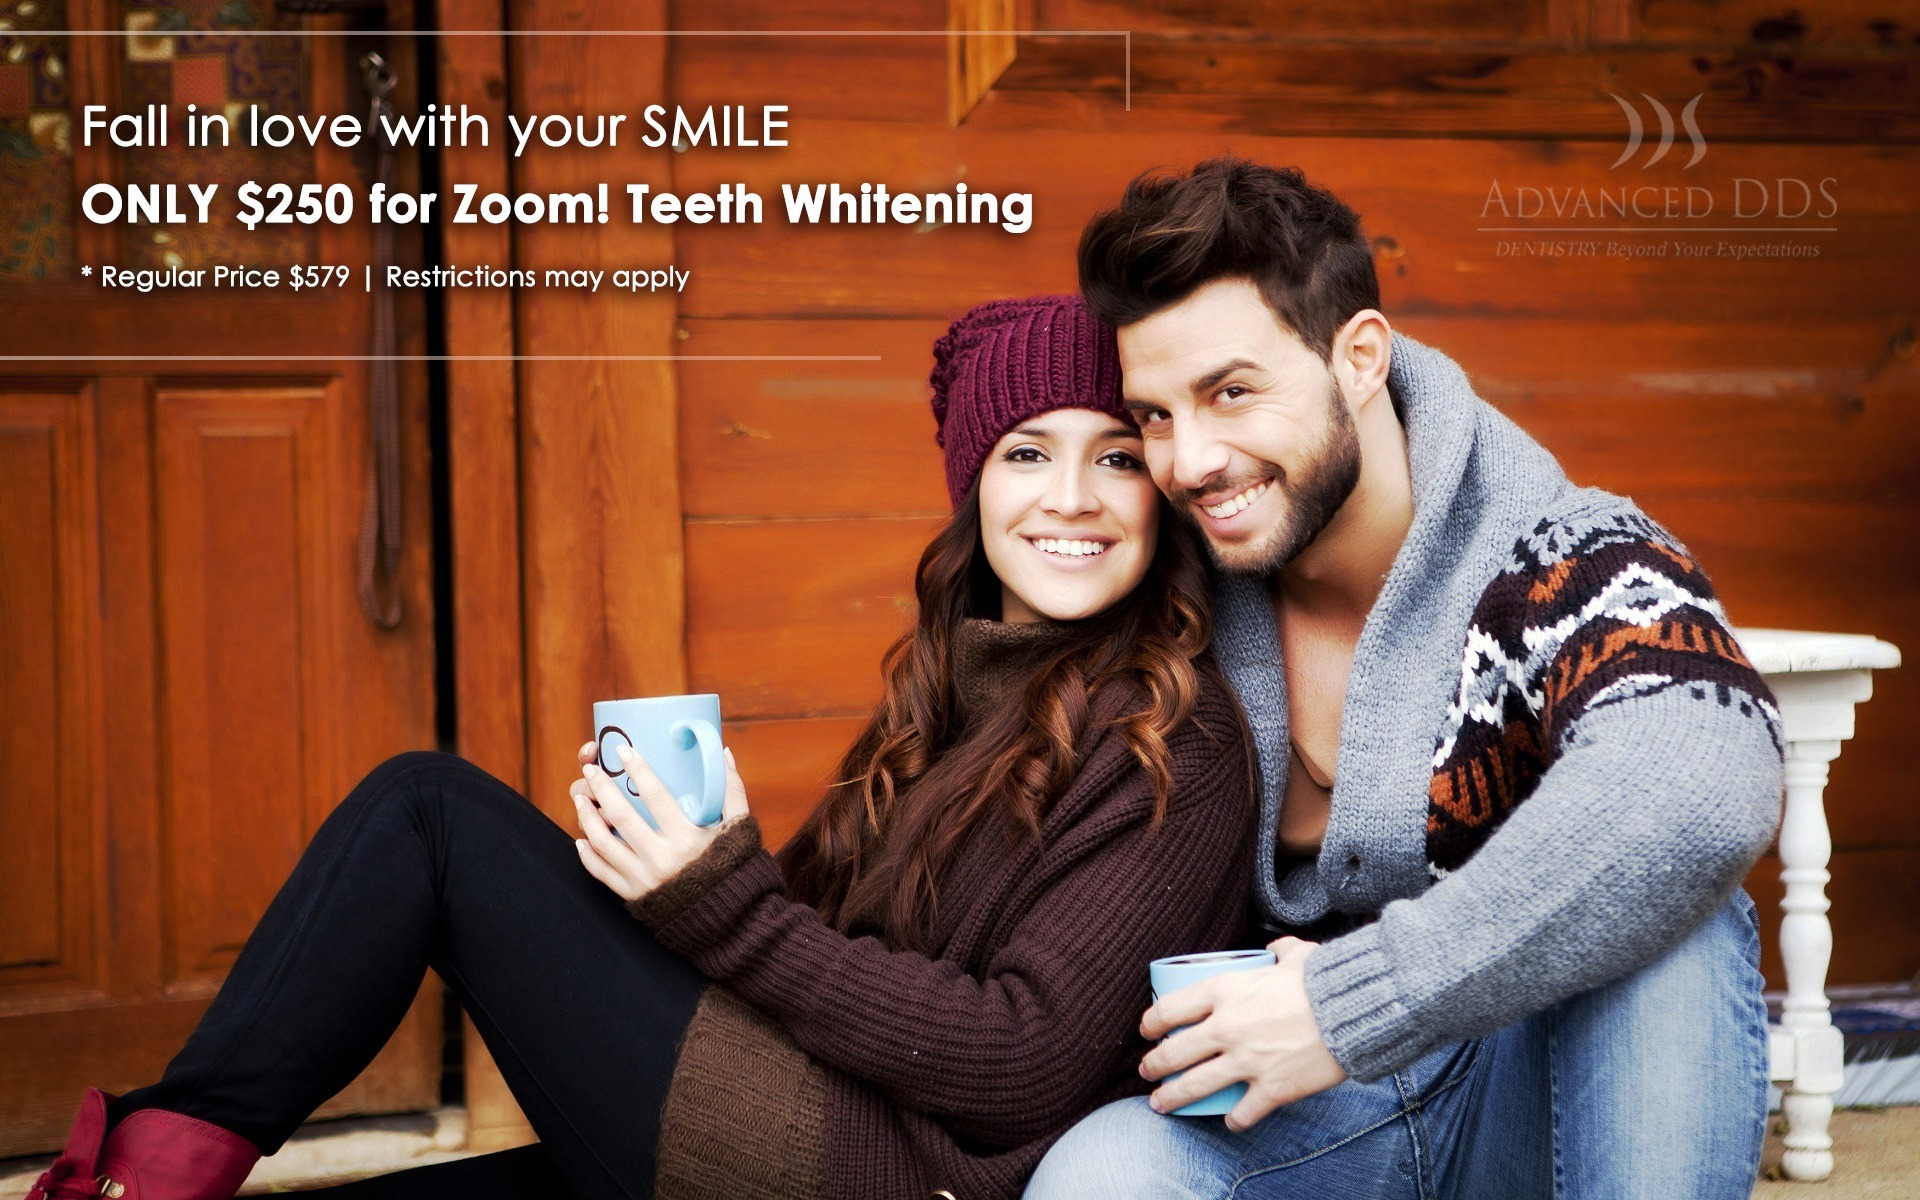 Fall Teeth Whitening Special Only 250 Regular Price 579